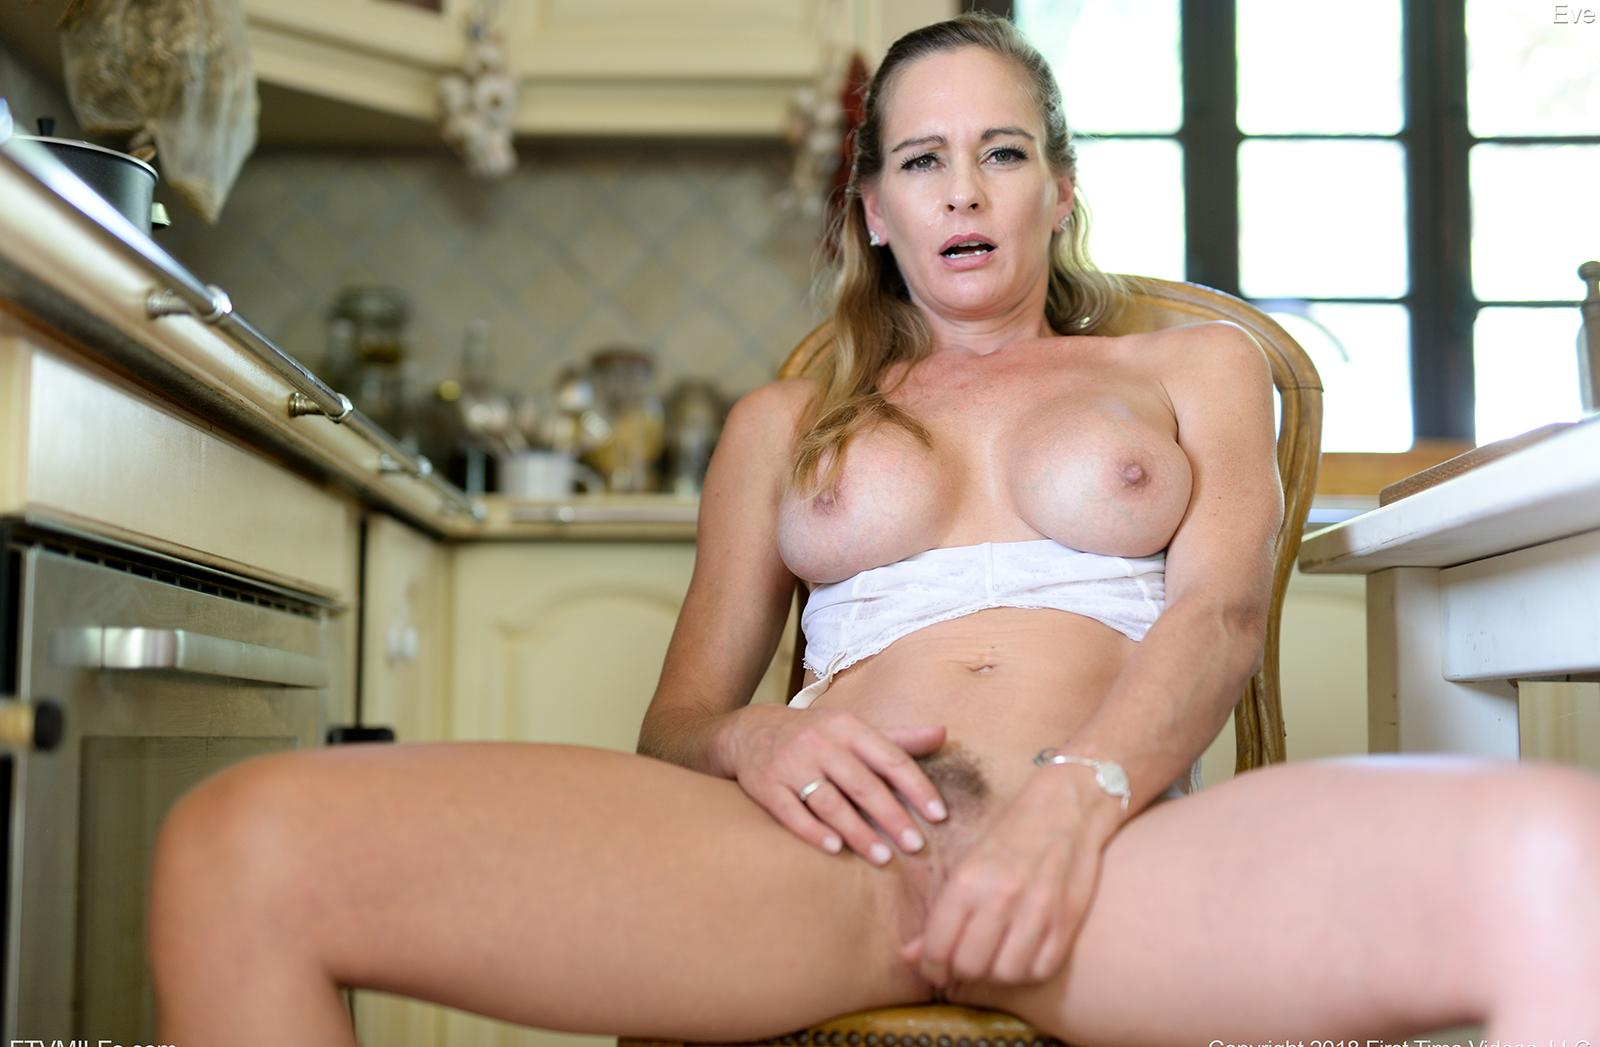 kinky french mom puts something dirty between her legs picture 15